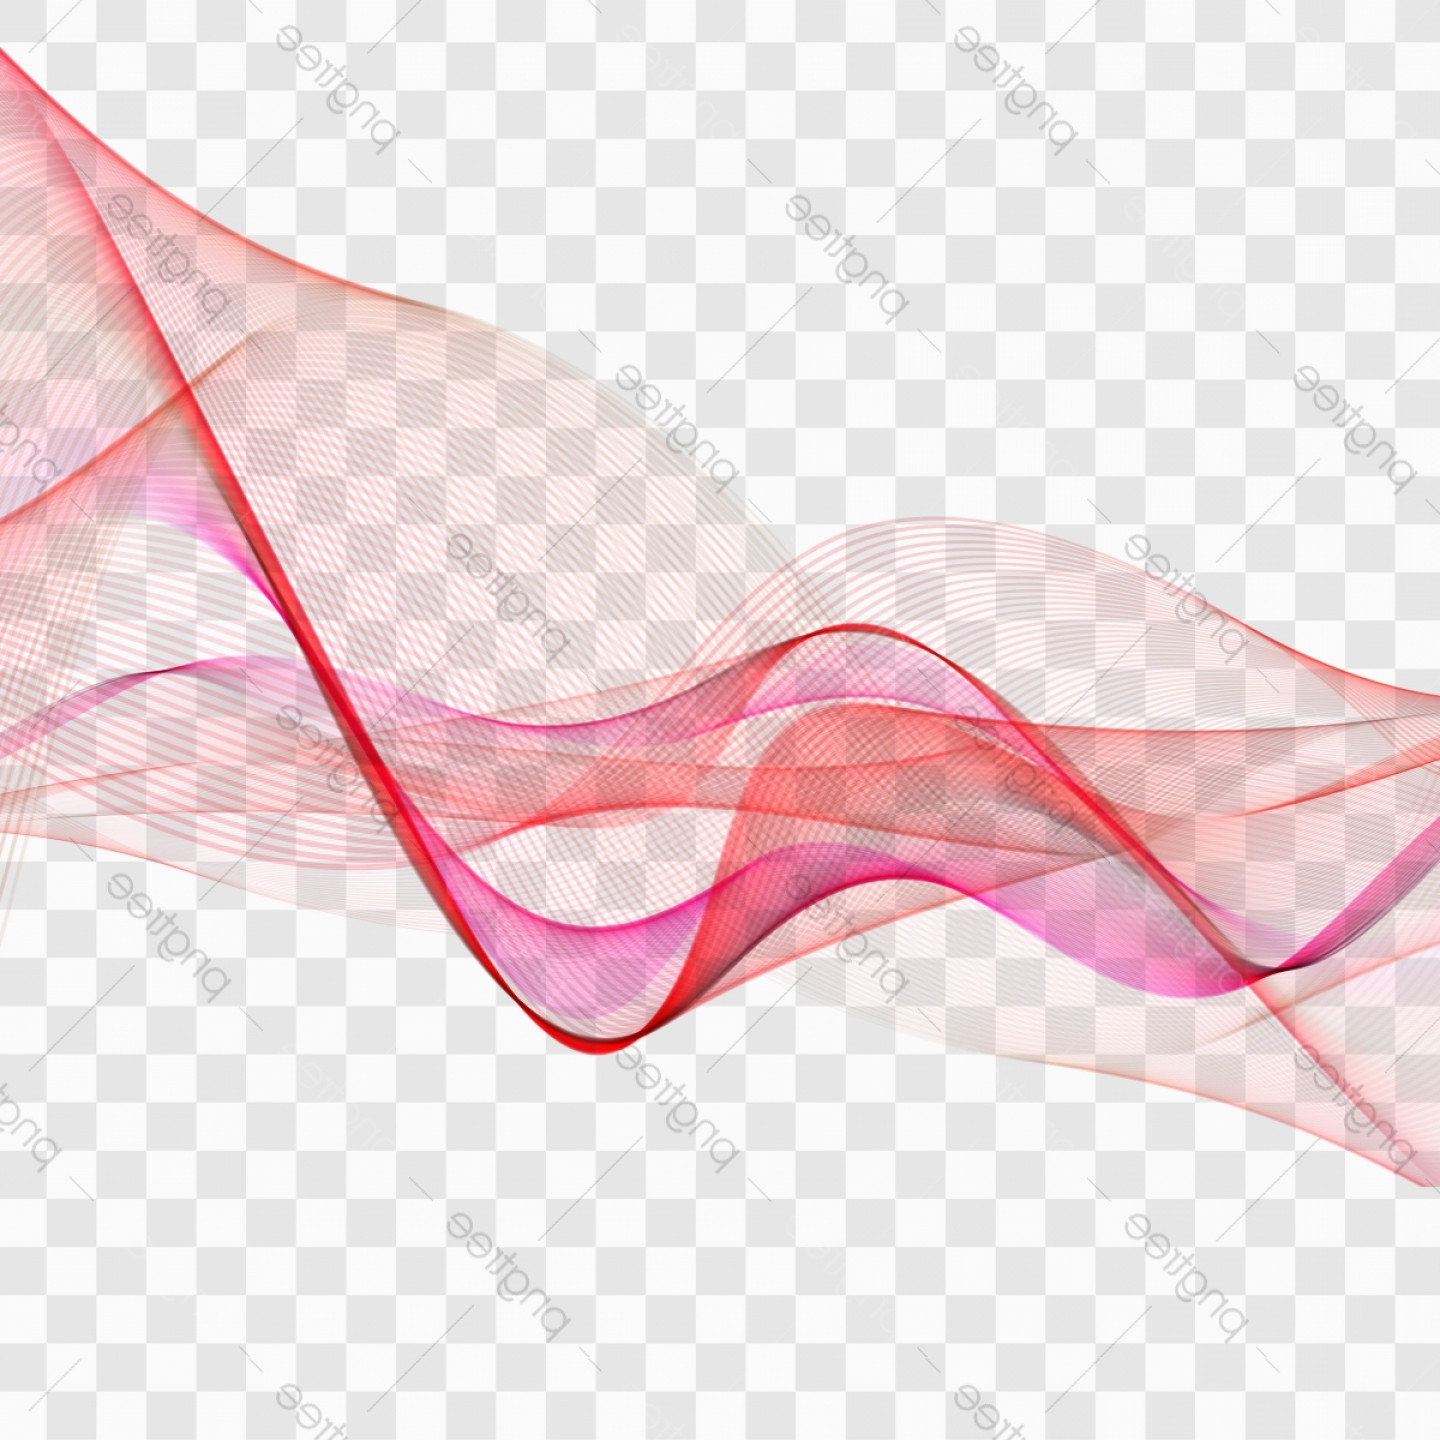 Free Vector Backgrounds Illustrator Free Download: Red Beautiful Wave Vector Background Illustration